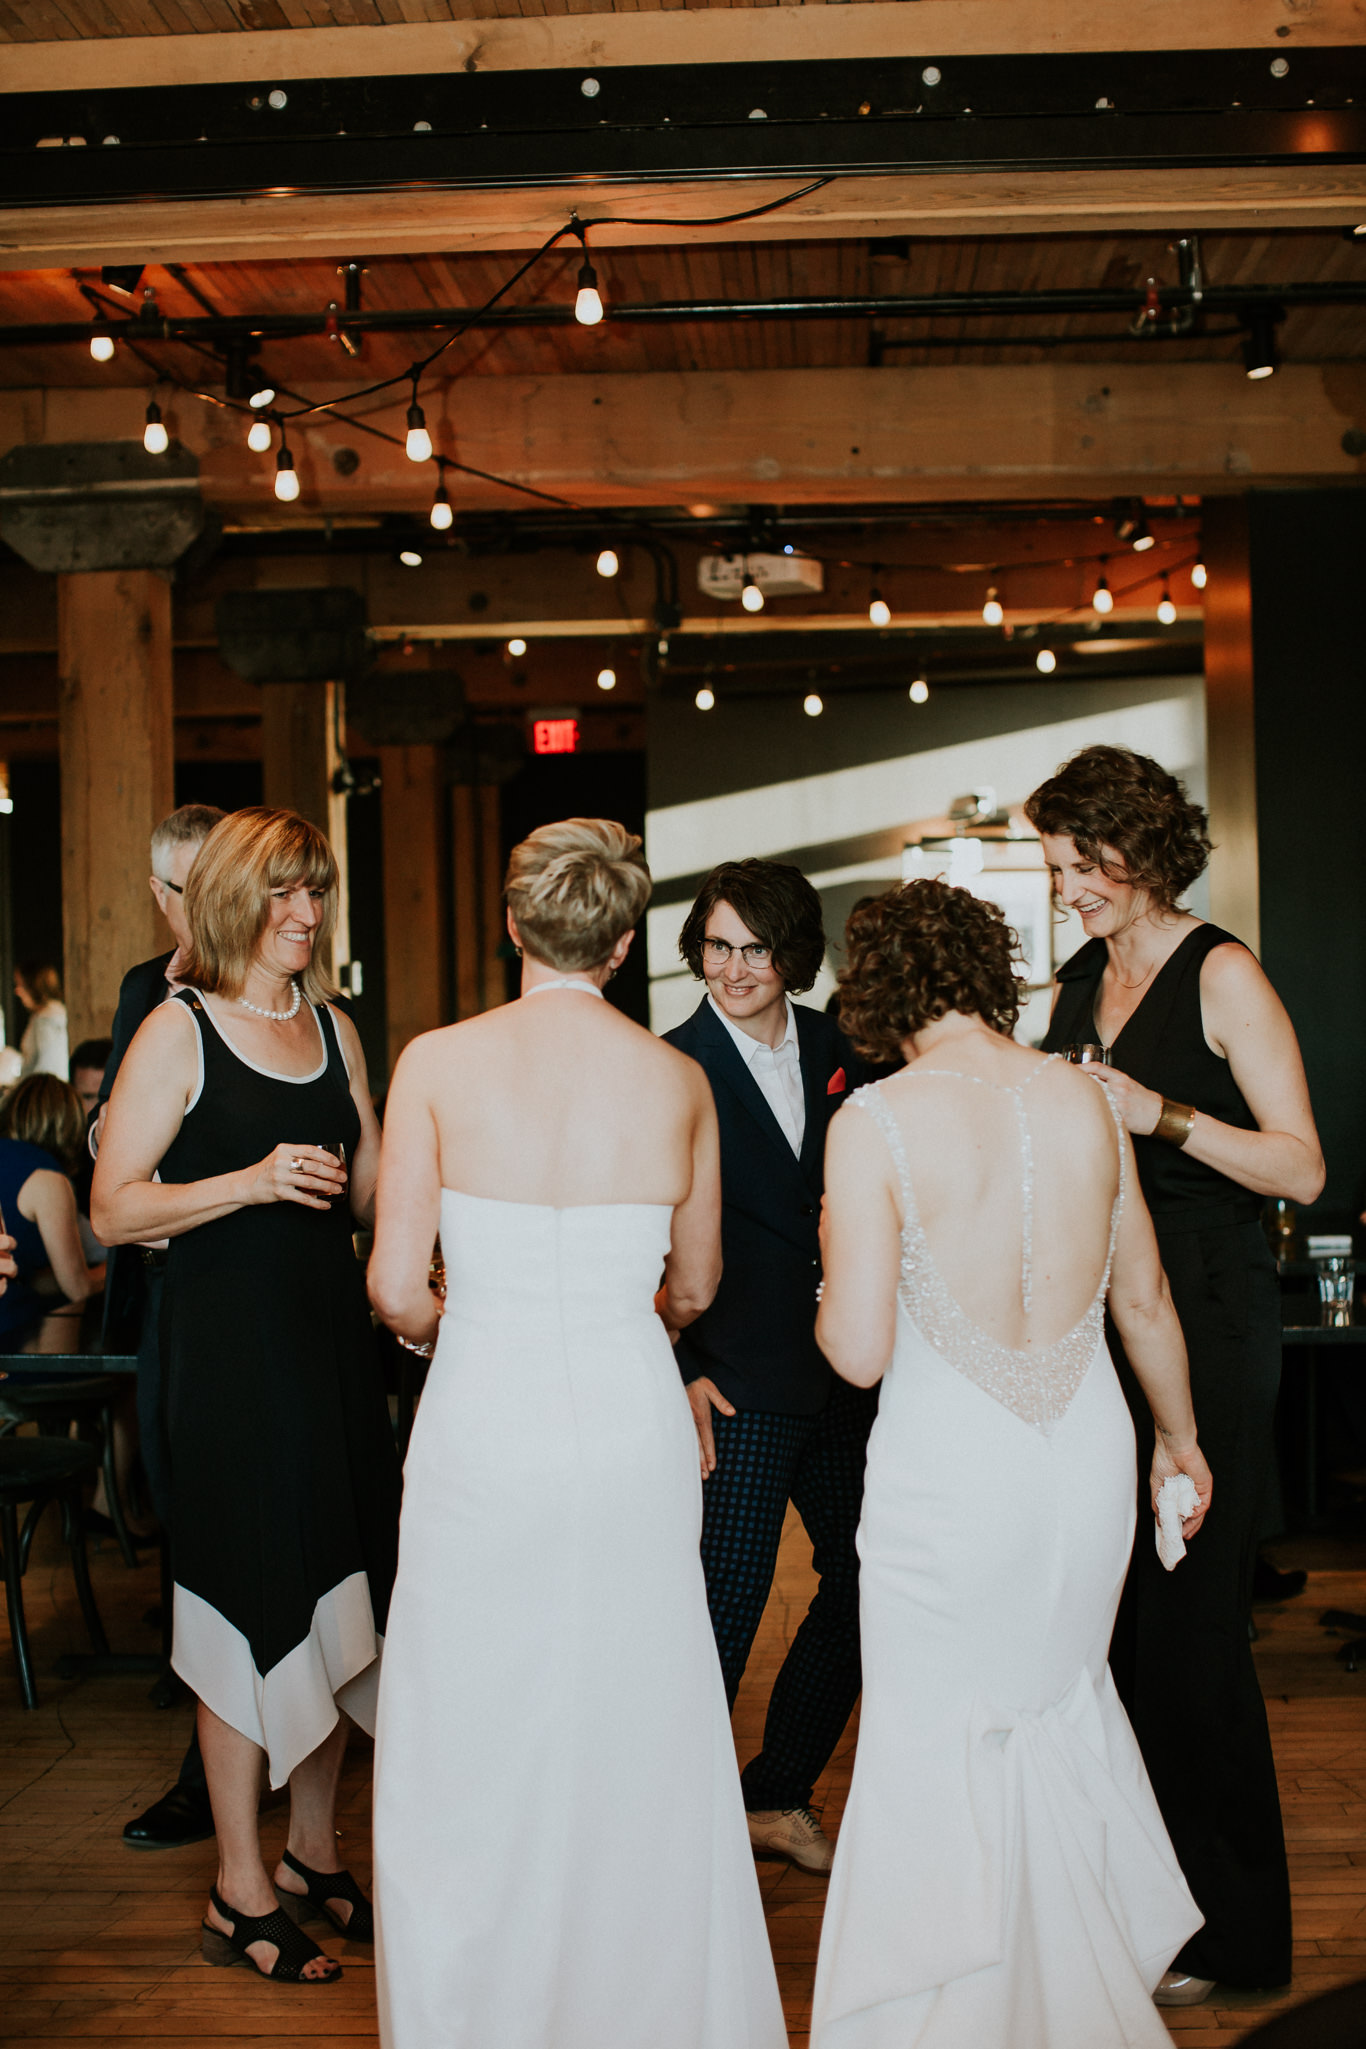 Lindsay-and-Heather-Charbar-Restaurant-Wedding-in-Calgary-147